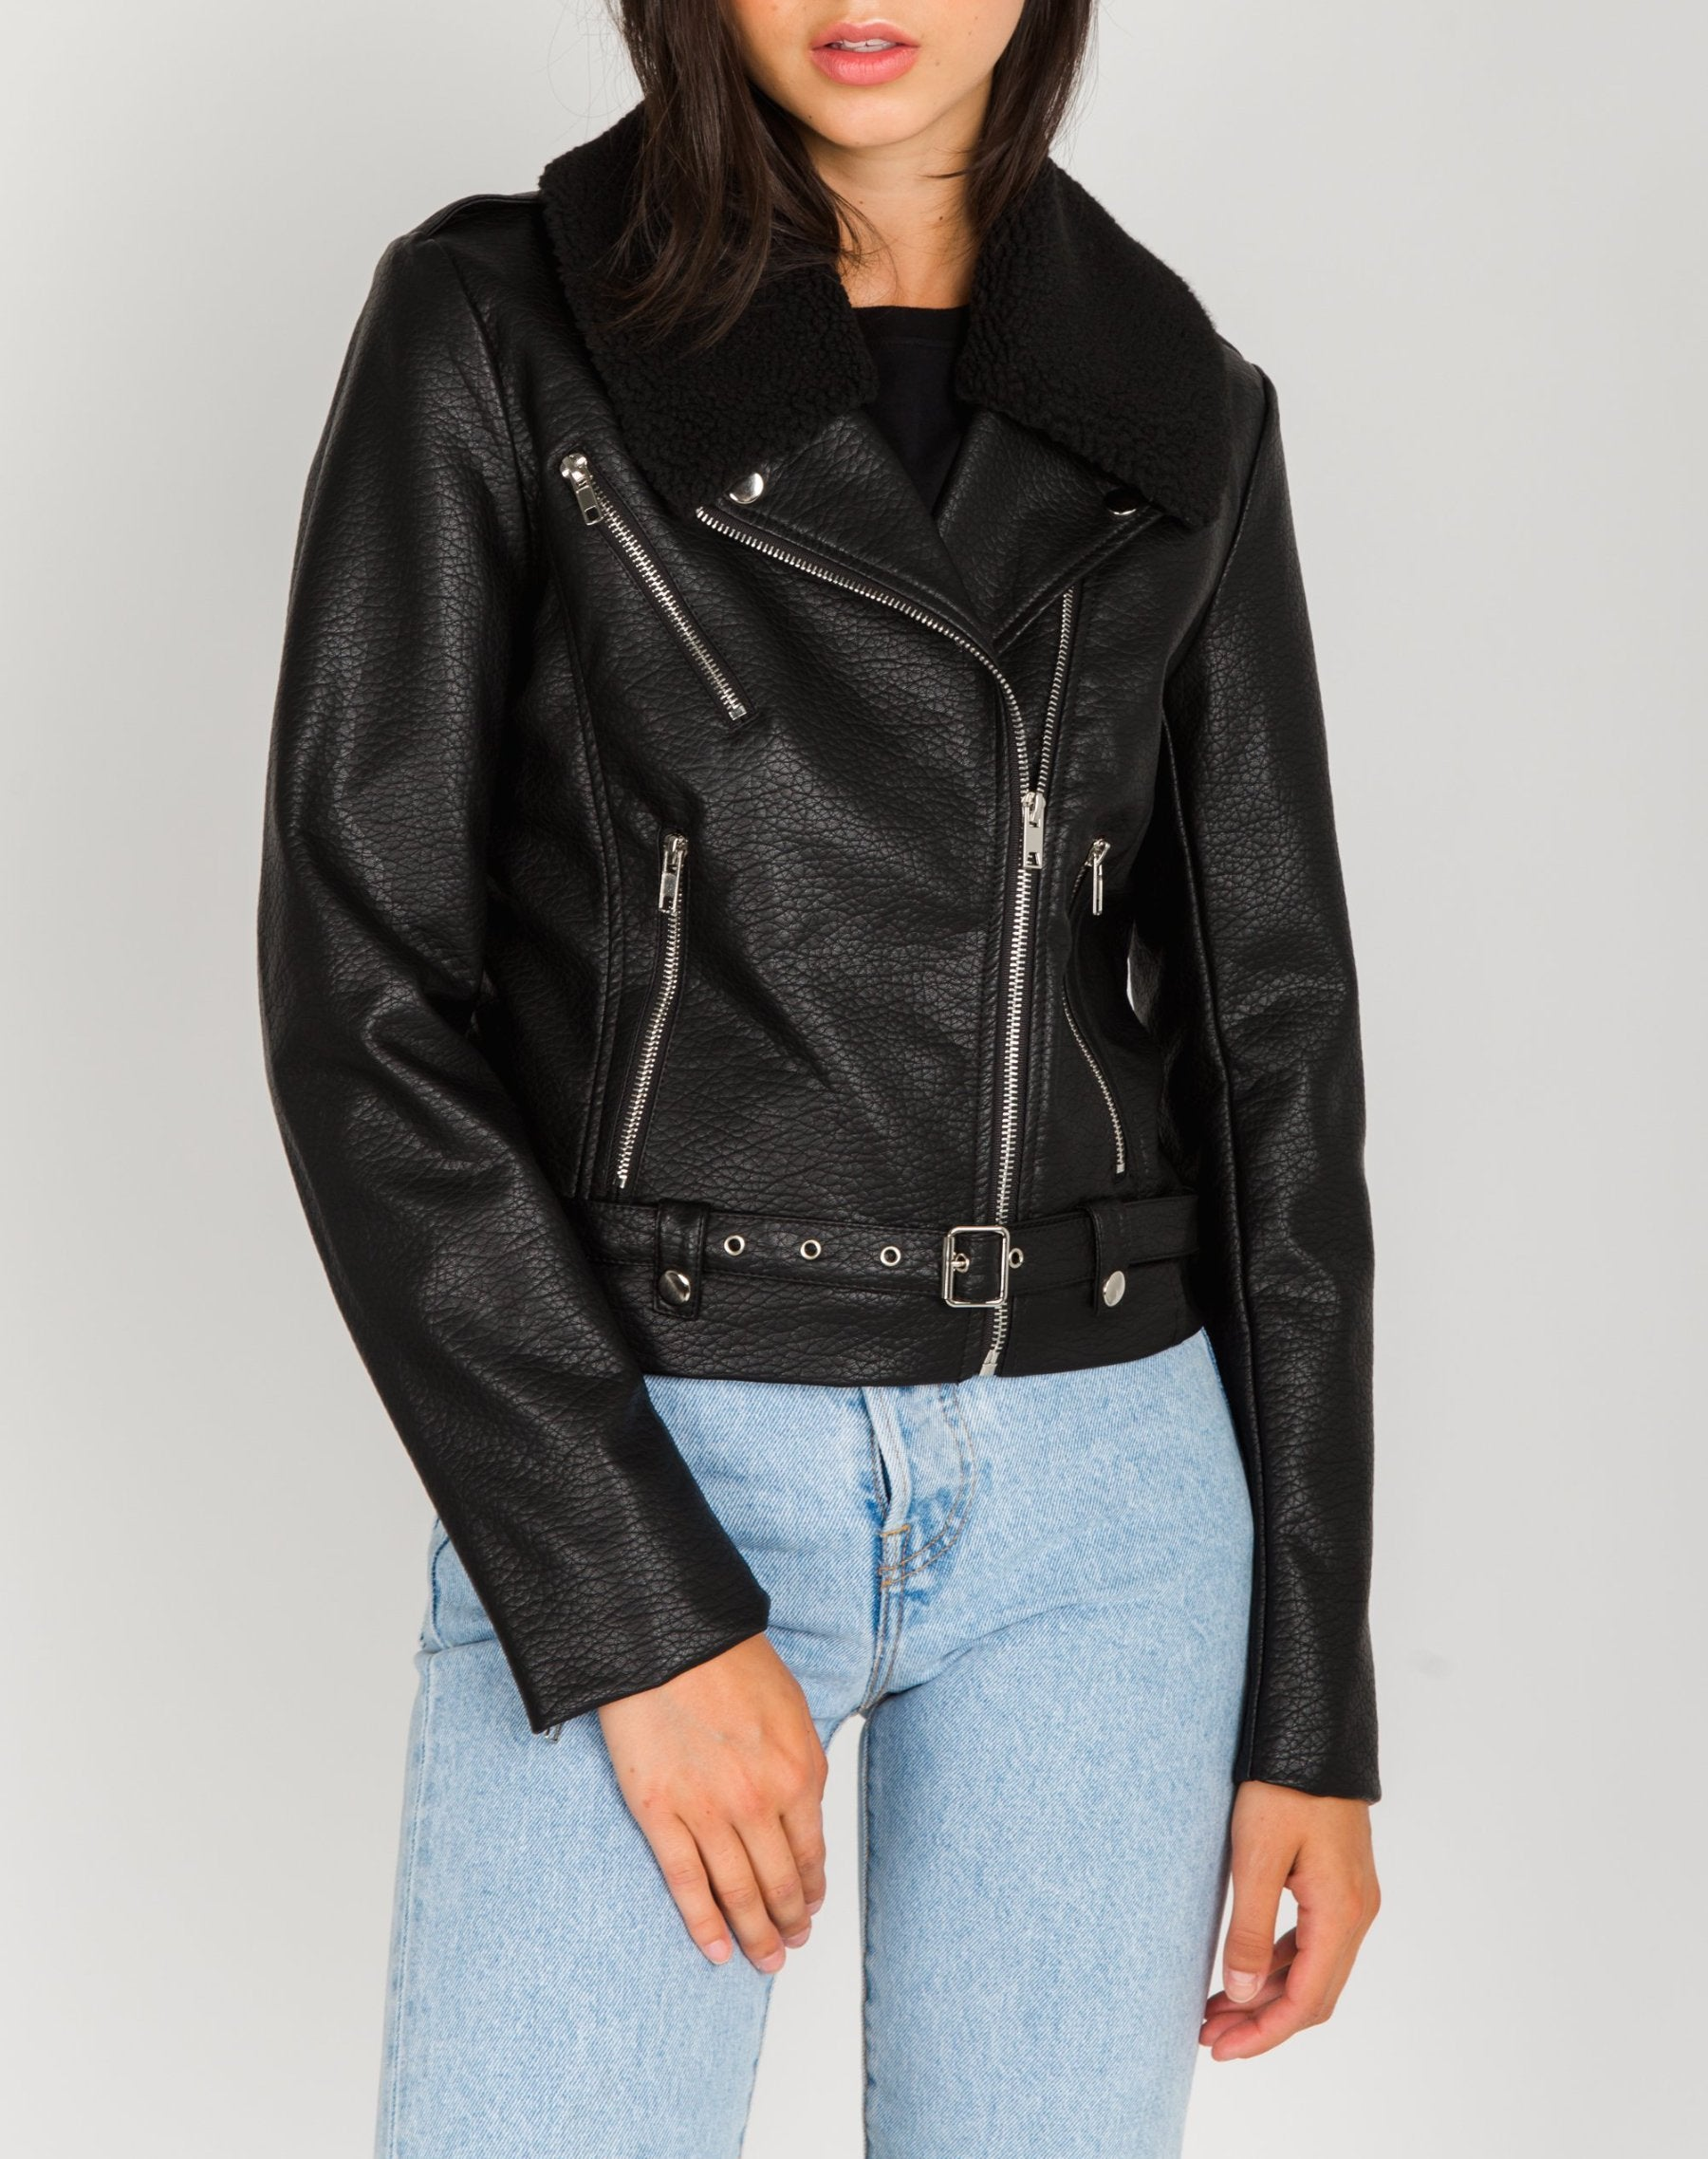 Photo of the Florence vegan leather moto jacket with shearling collar in black by Brunette the Label.